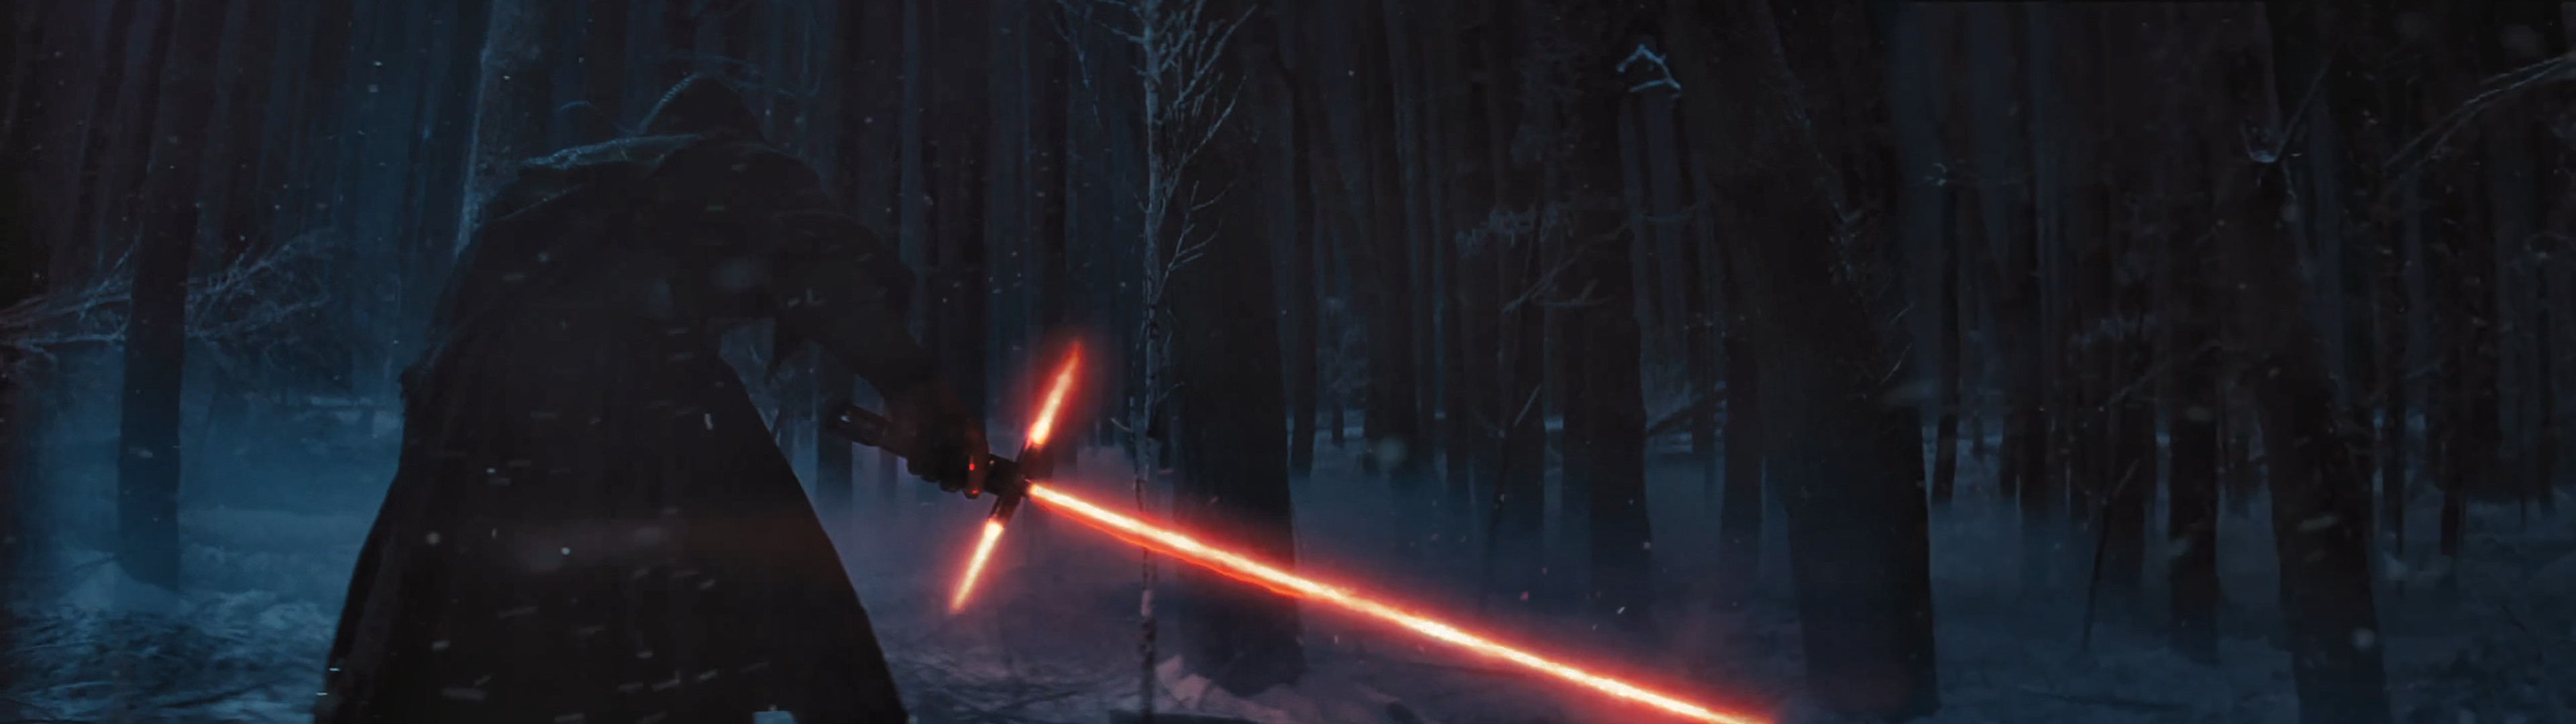 Star Wars Dual Monitor Wallpapers 43 Background Pictures